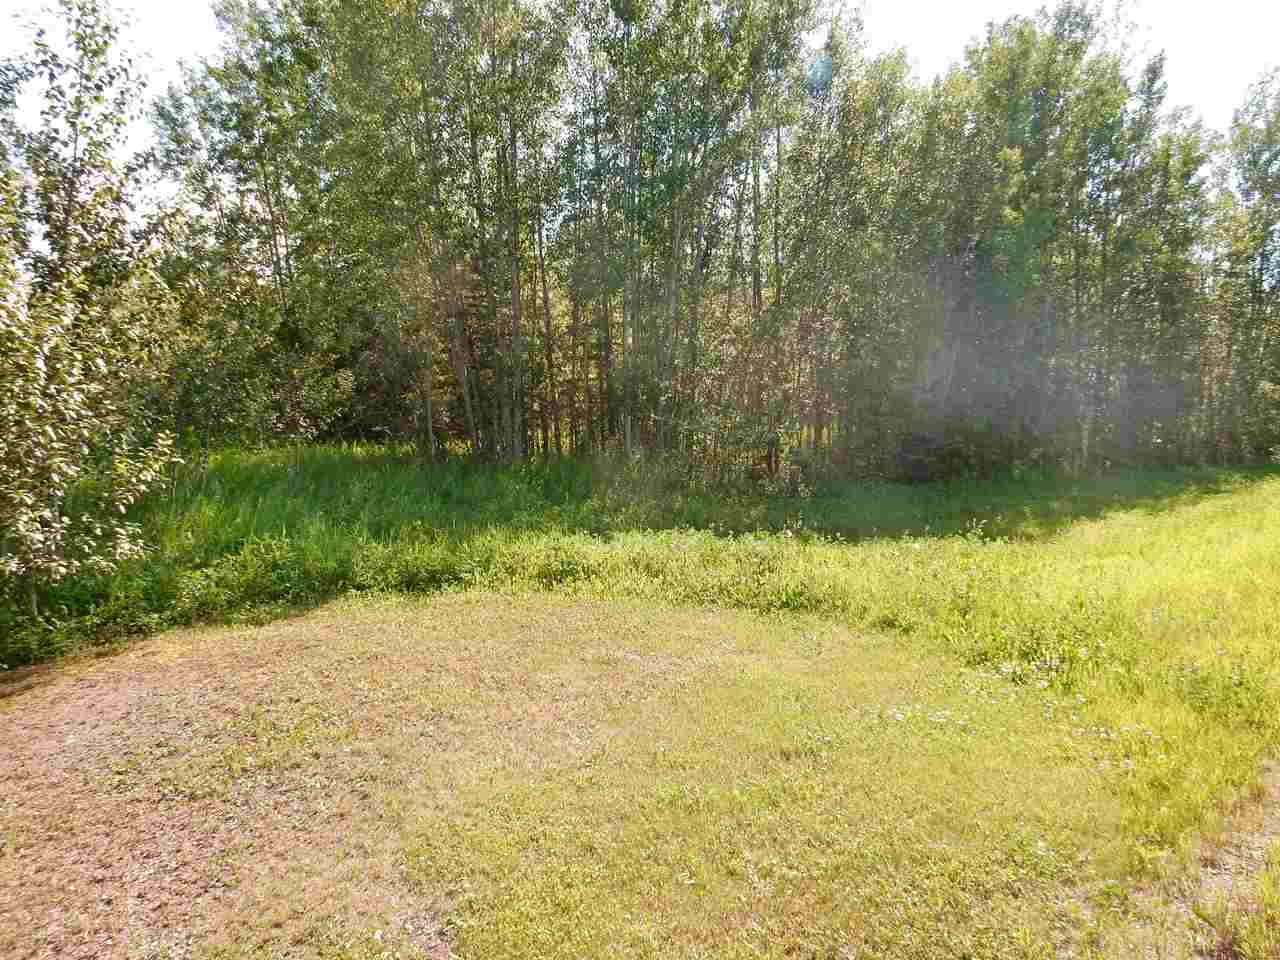 Photo 5: LOT 18 Pinebrook Estates: Rural Thorhild County Rural Land/Vacant Lot for sale : MLS® # E4010007